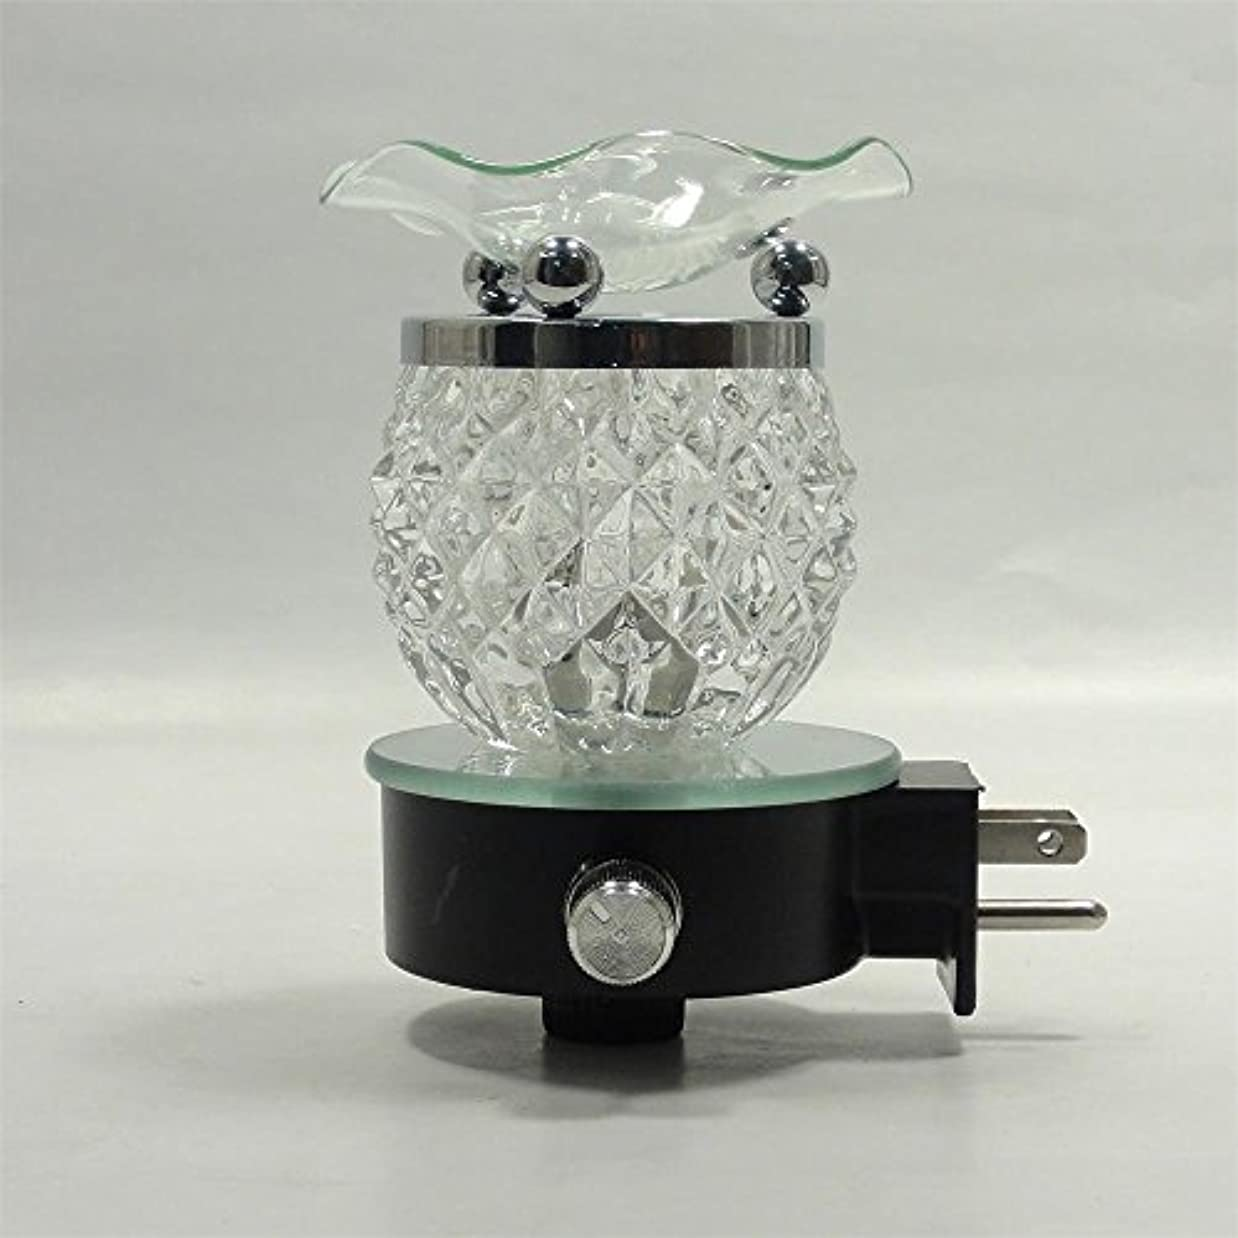 悪意蒸留砂のElectric Oil Warmer Burner Tart Diffuserアロマ香りつきFragrance Essential Oils壁プラグinランプ